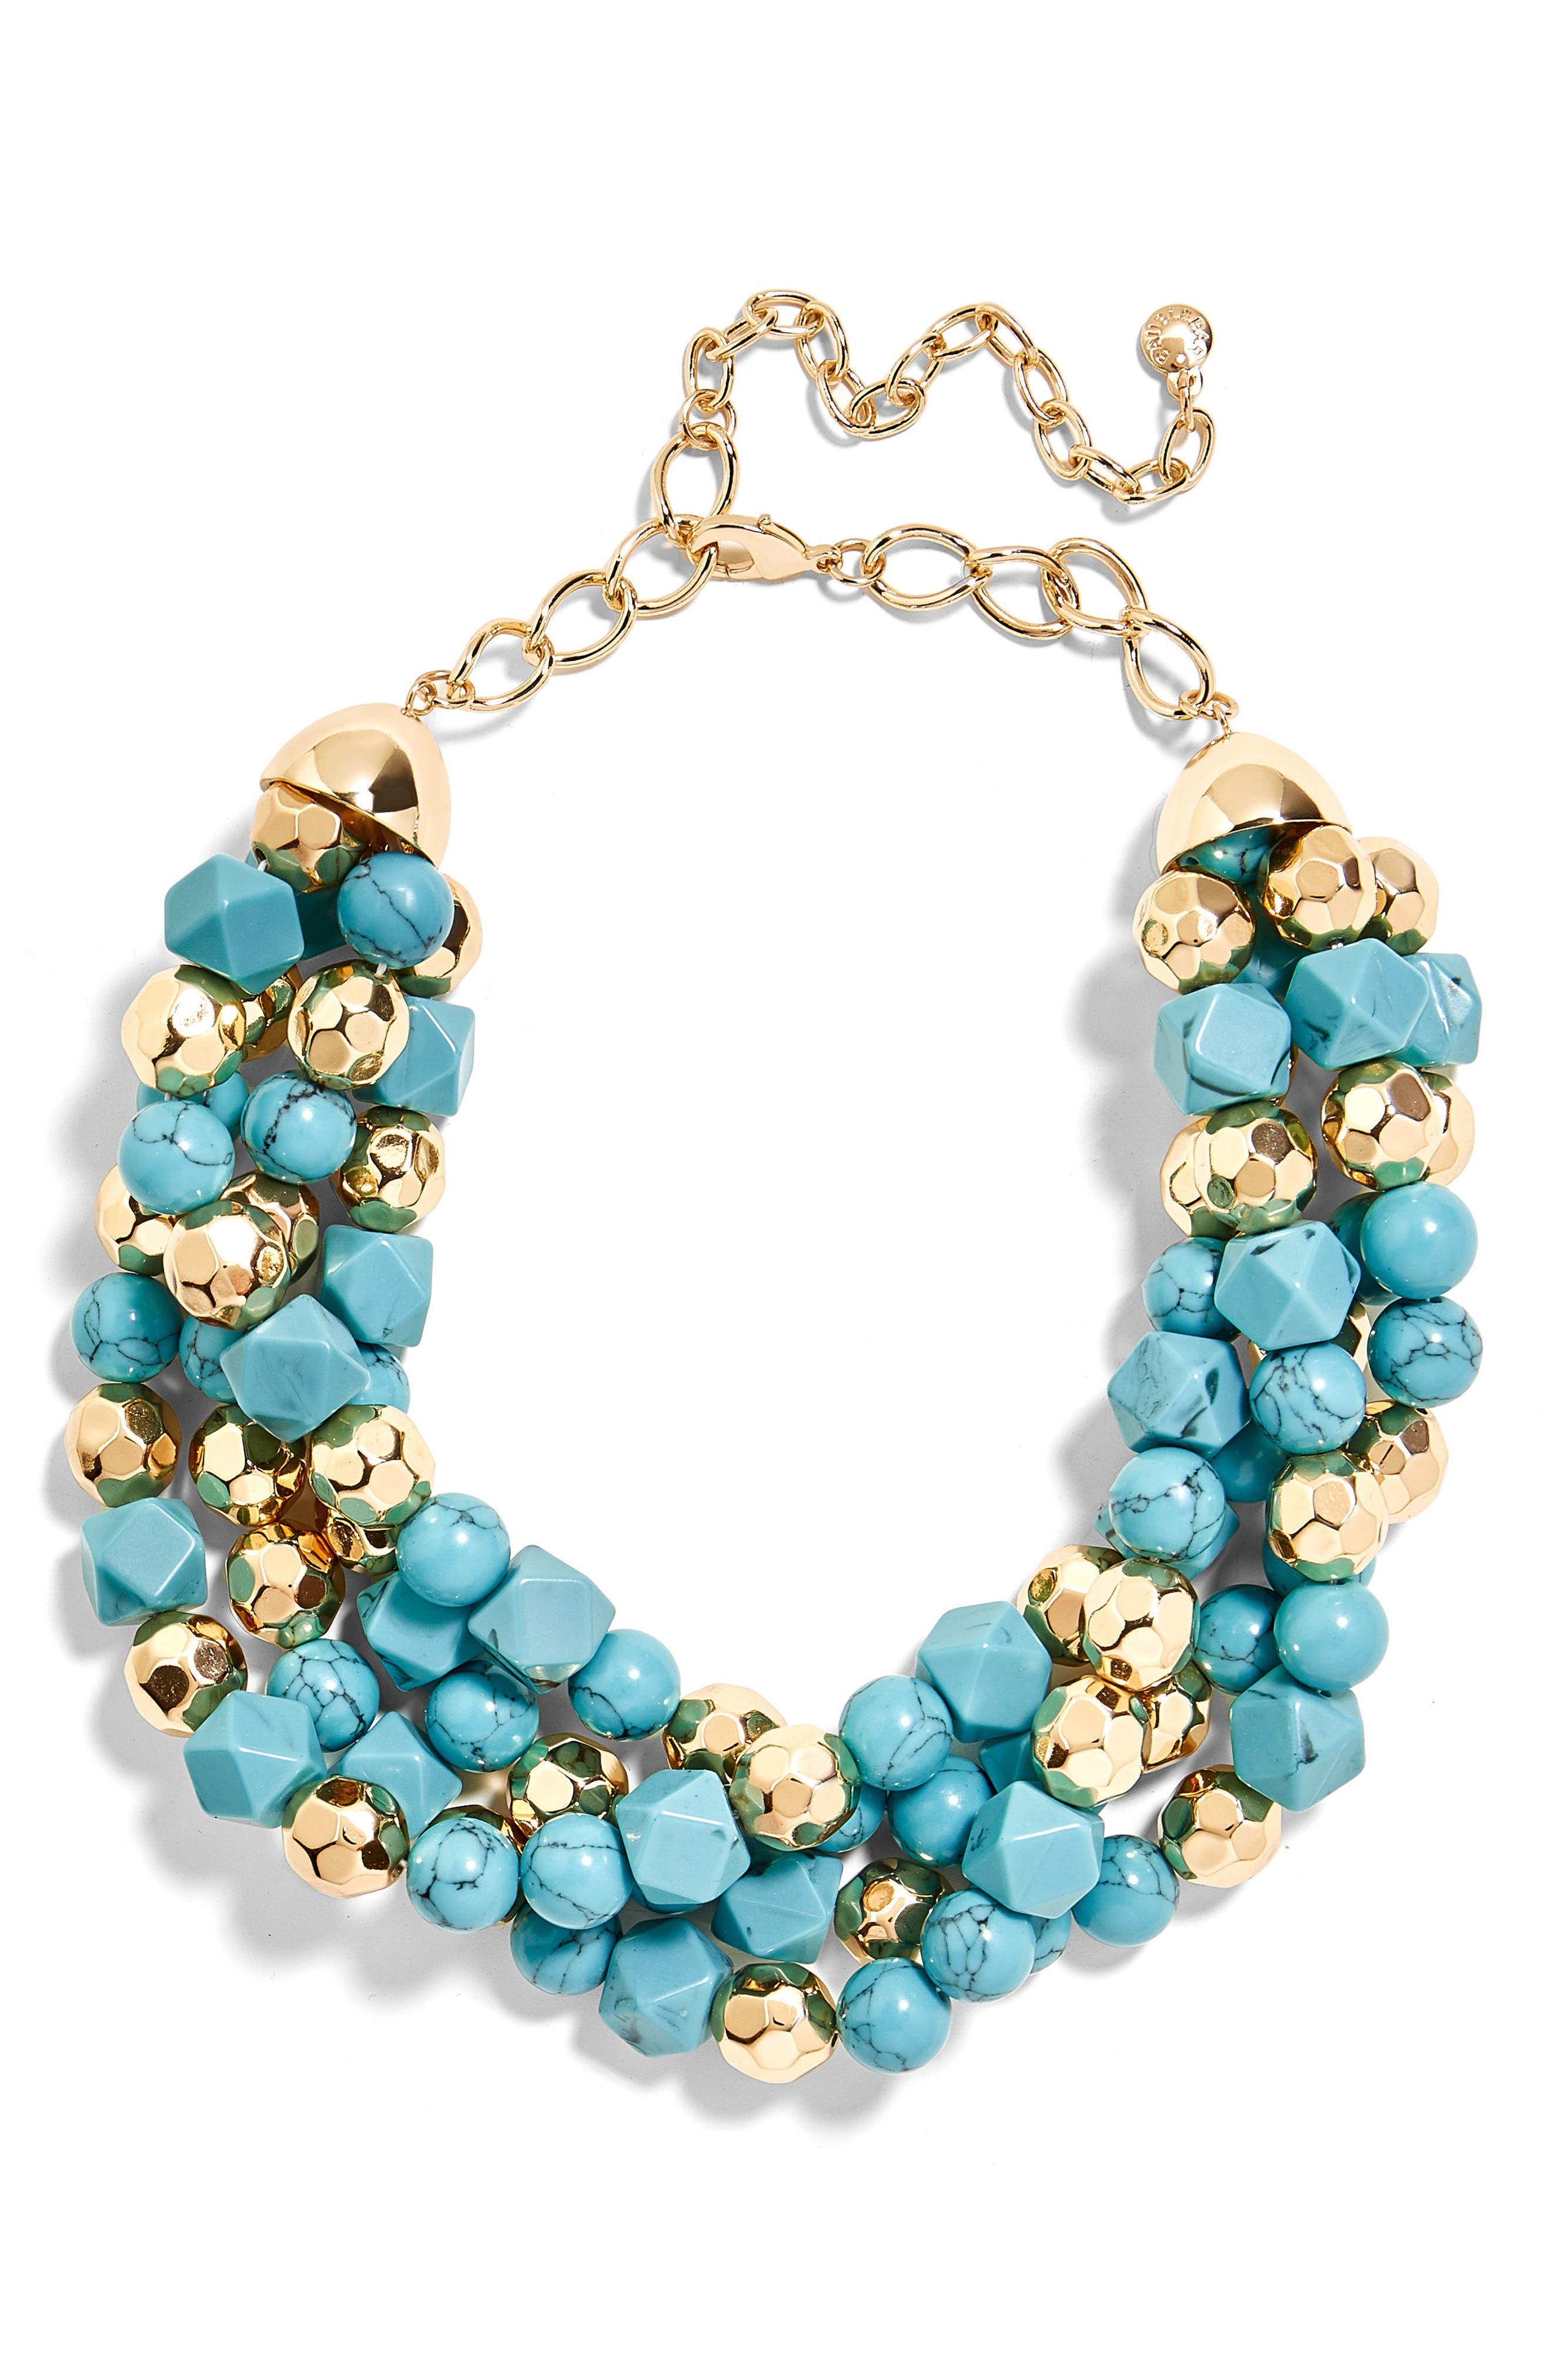 Cytherea Statement Necklace,                             Main thumbnail 1, color,